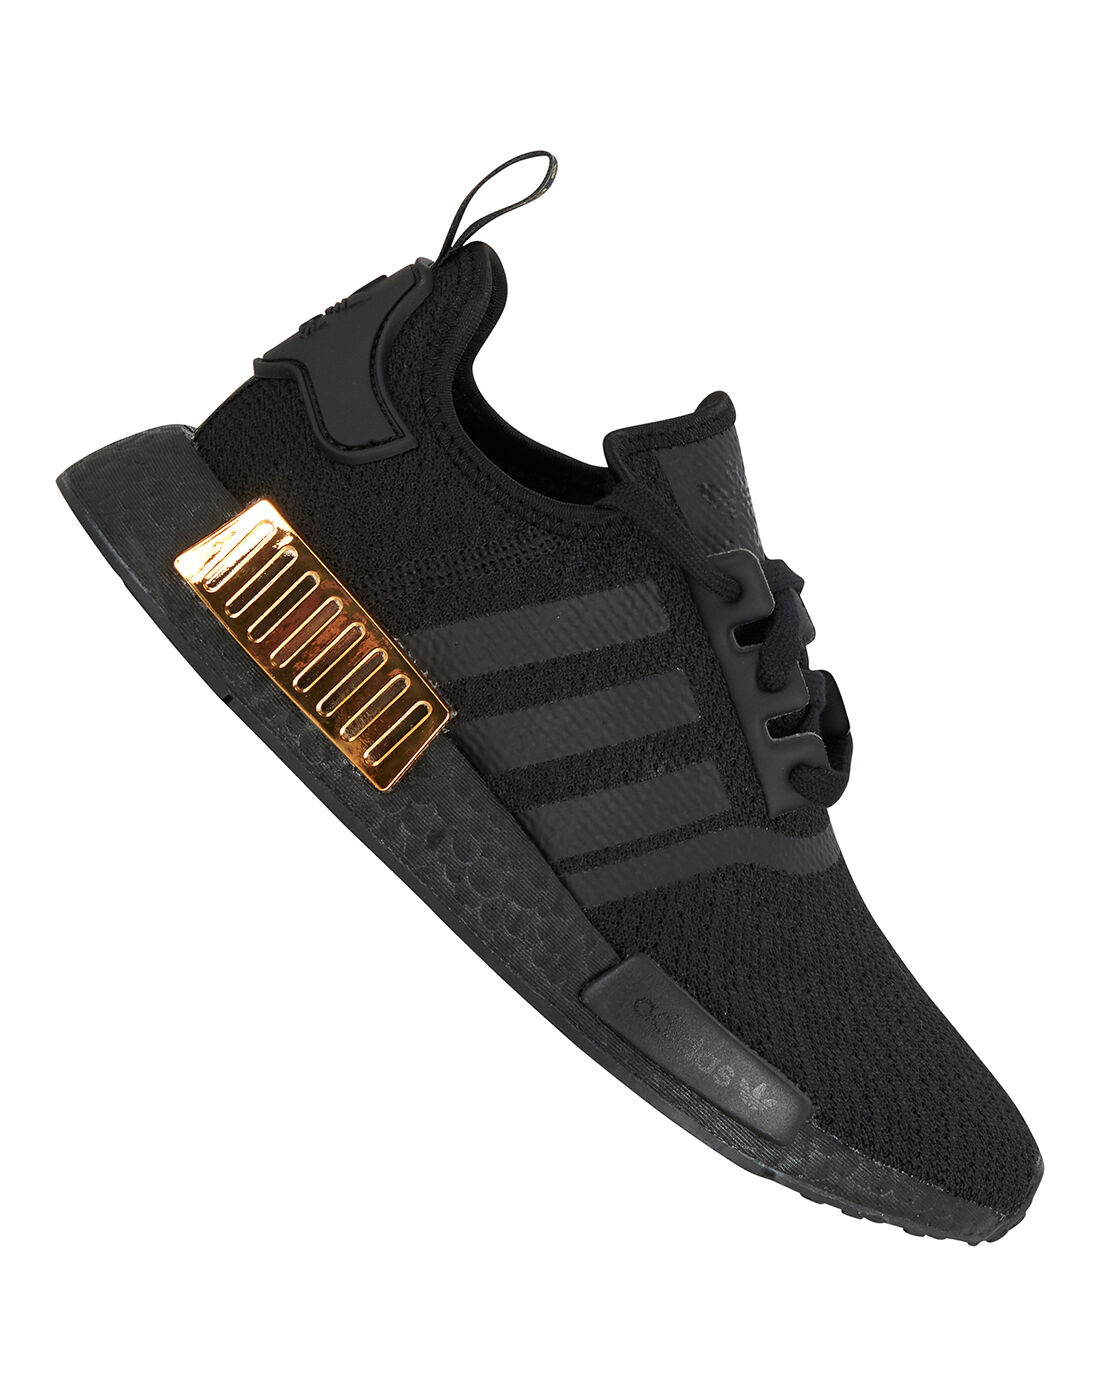 adidas Originals adidas superstar replacement laces for sale 2017 | Womens NMD R1